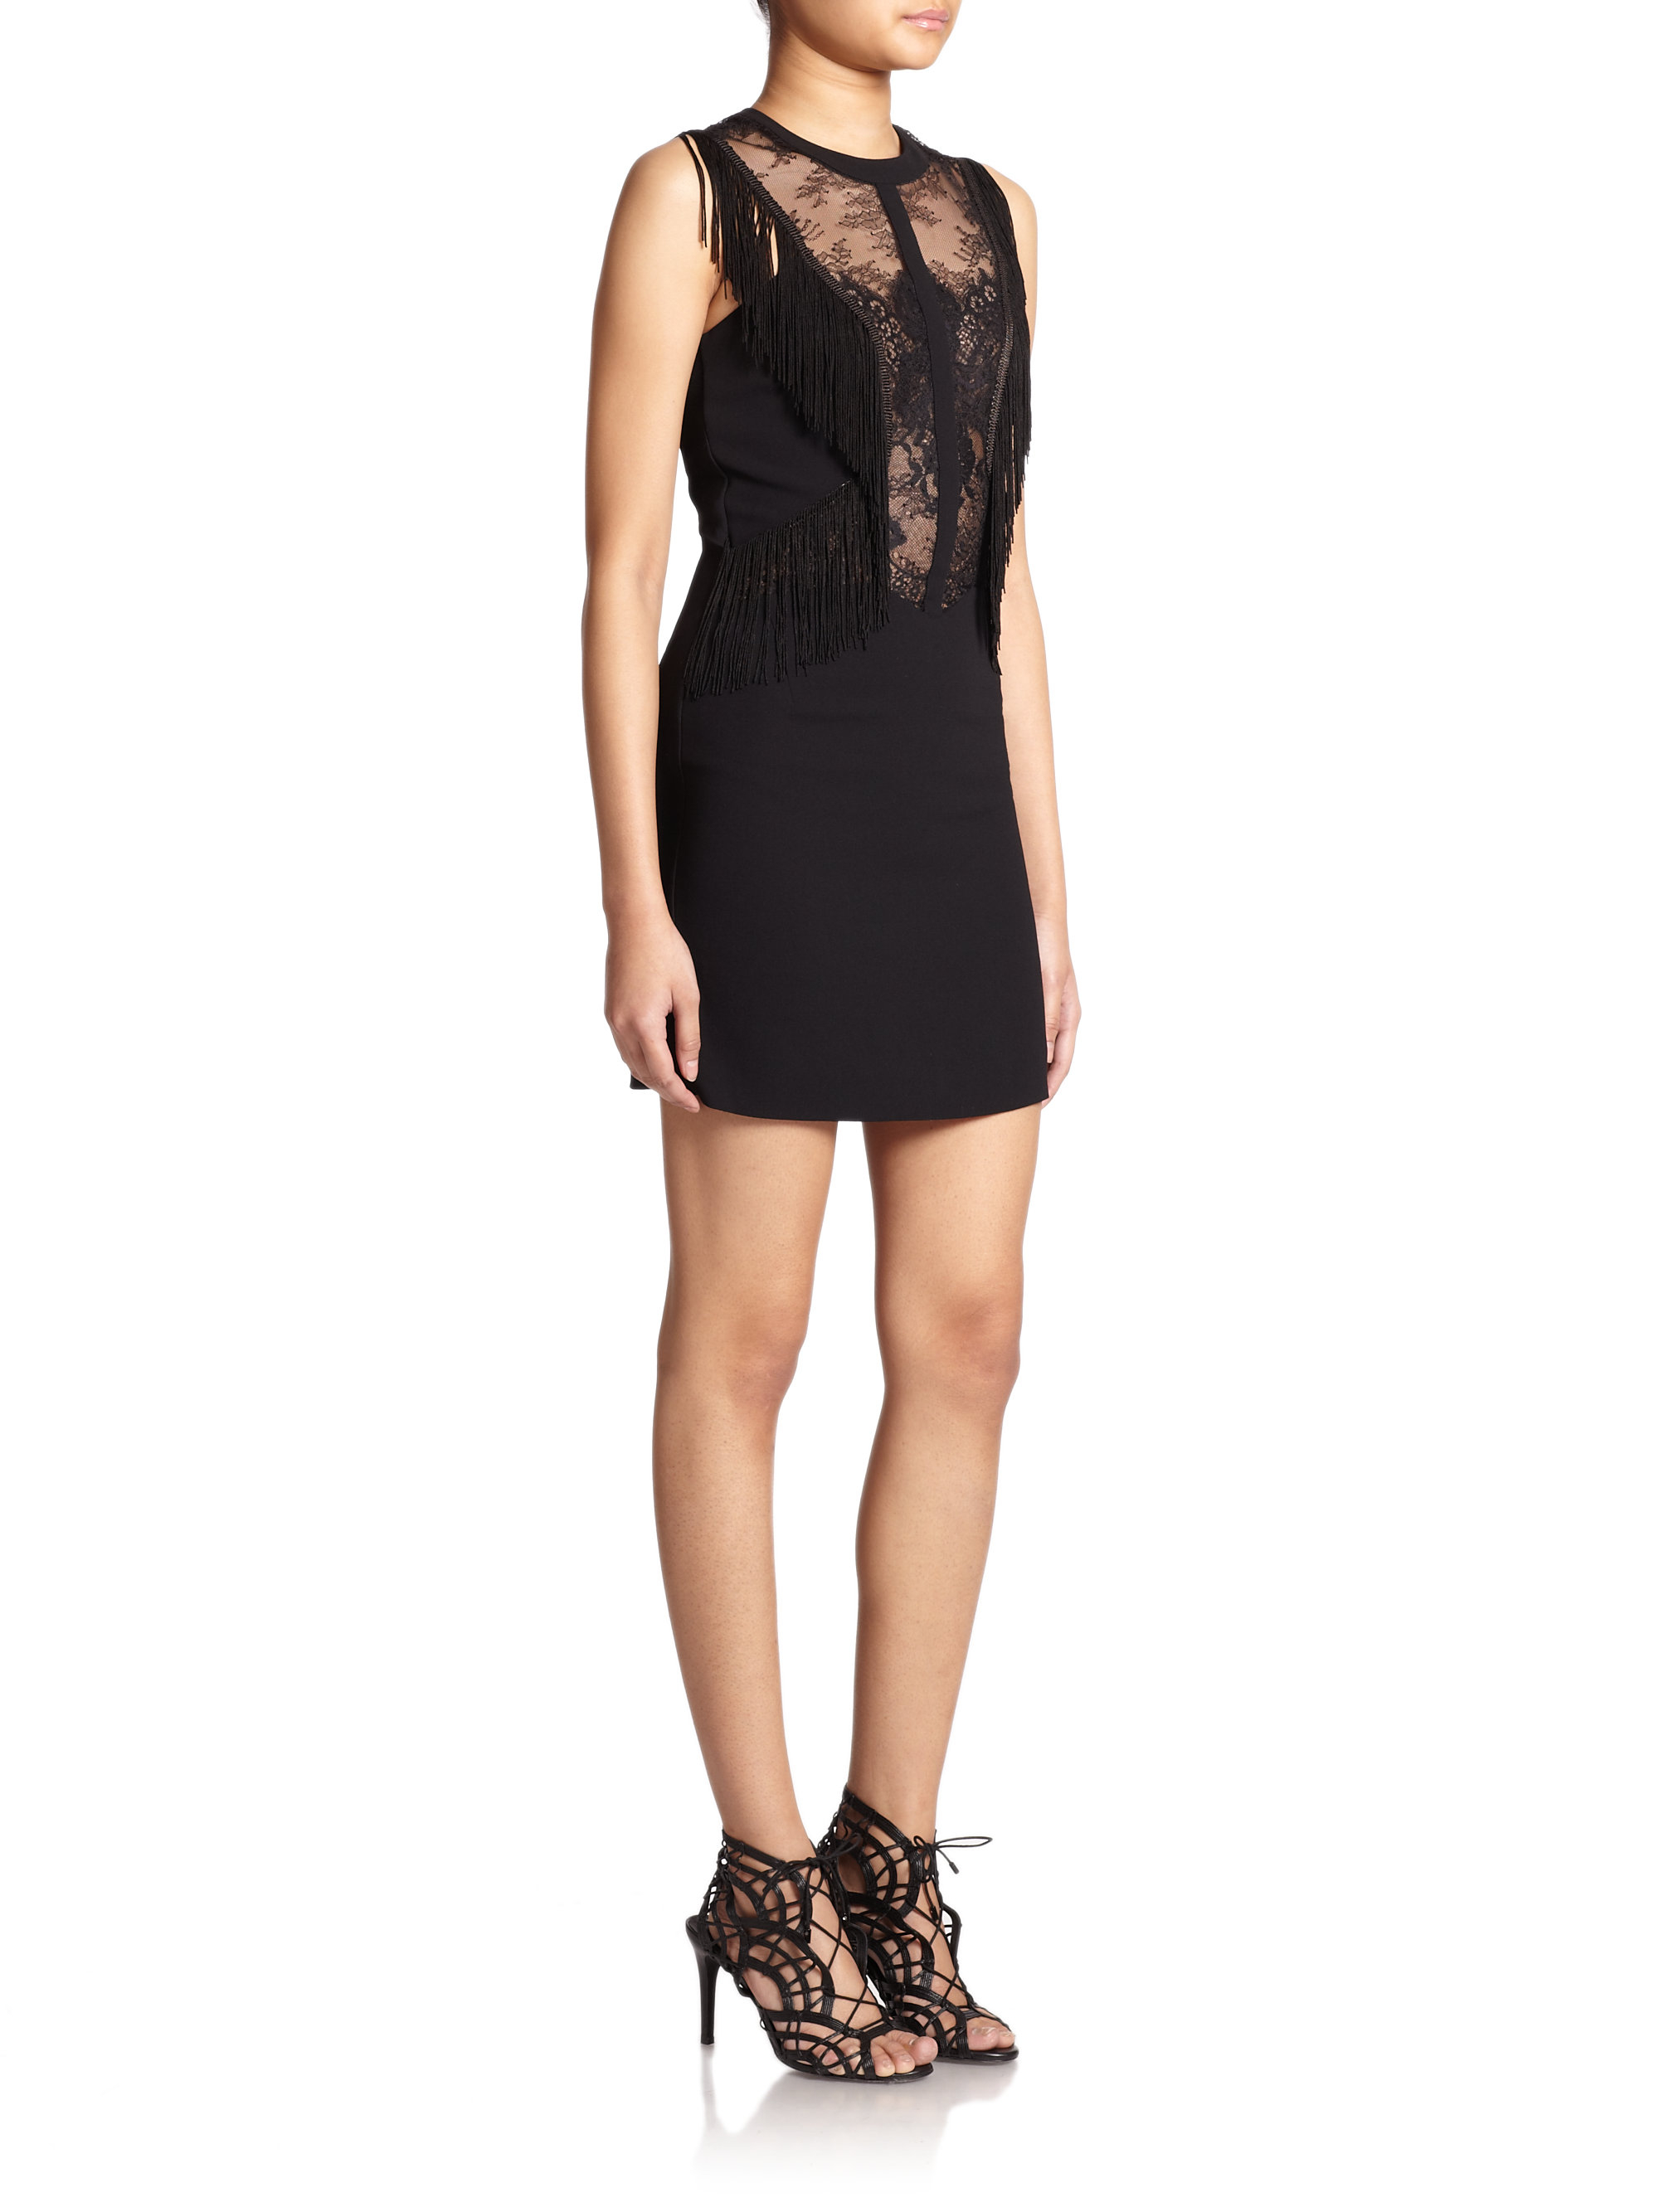 Kooples lace dress